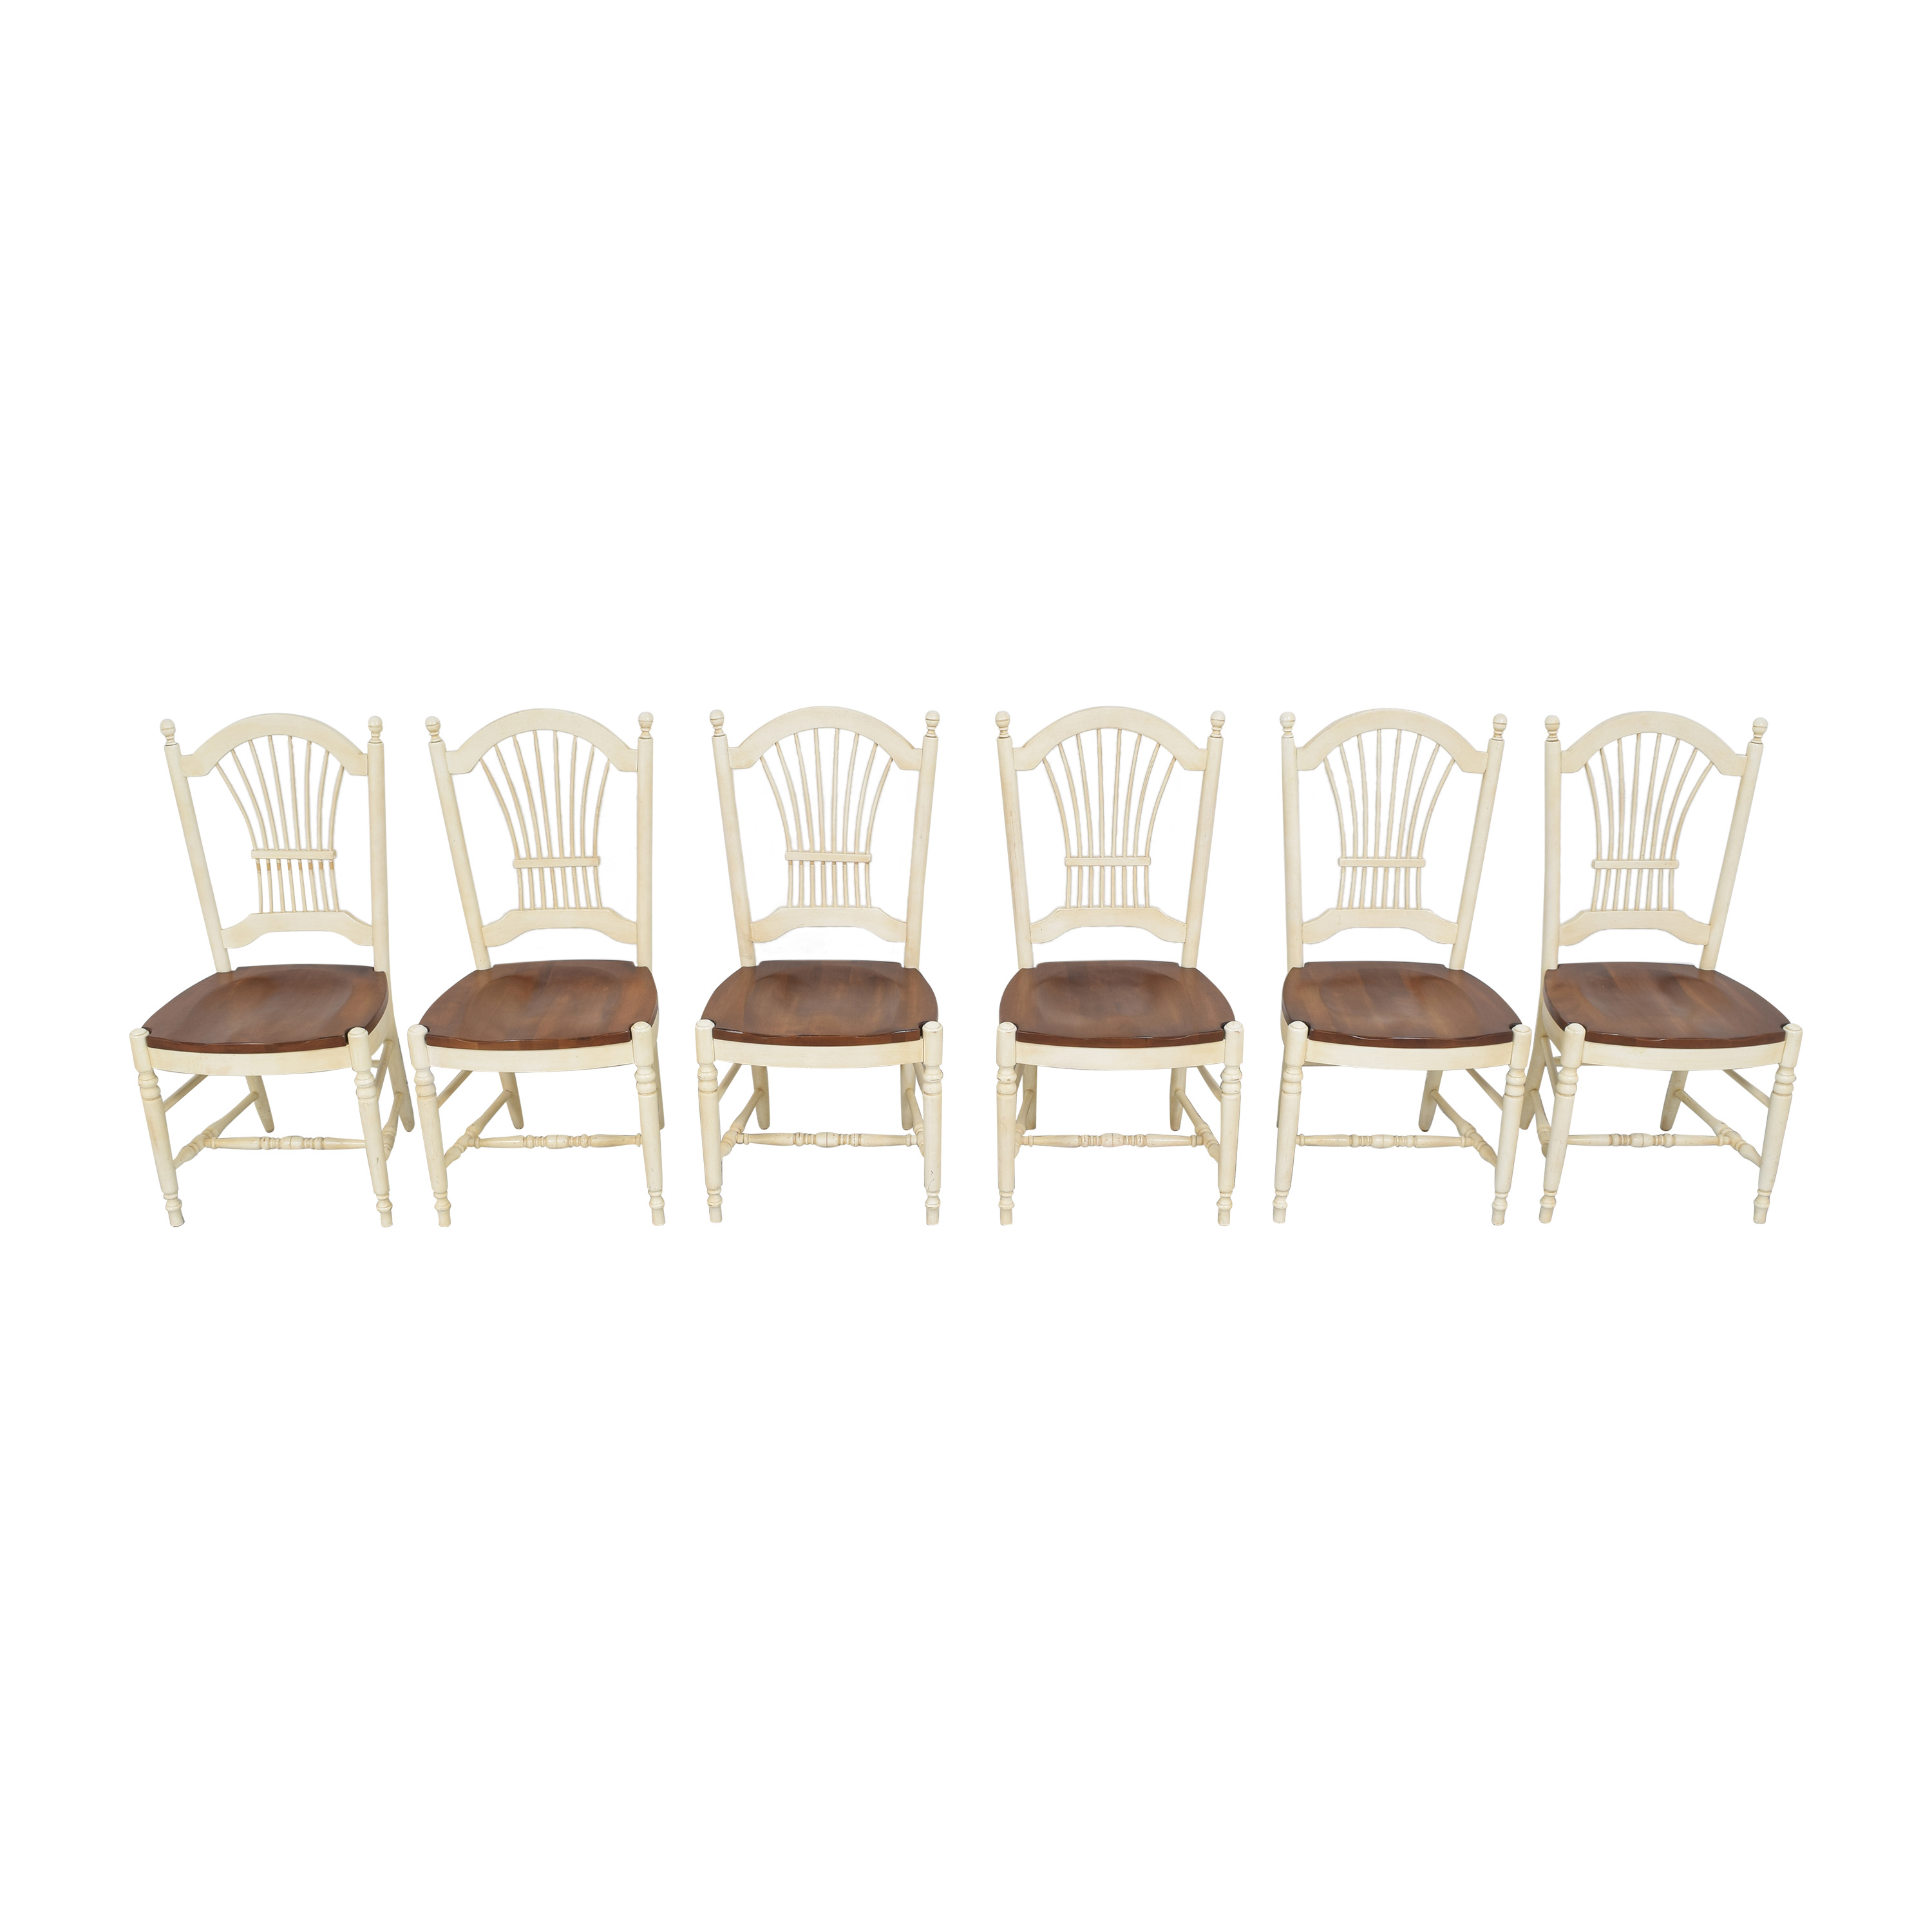 Ethan Allen Ethan Allen Country French Dining Chairs Chairs